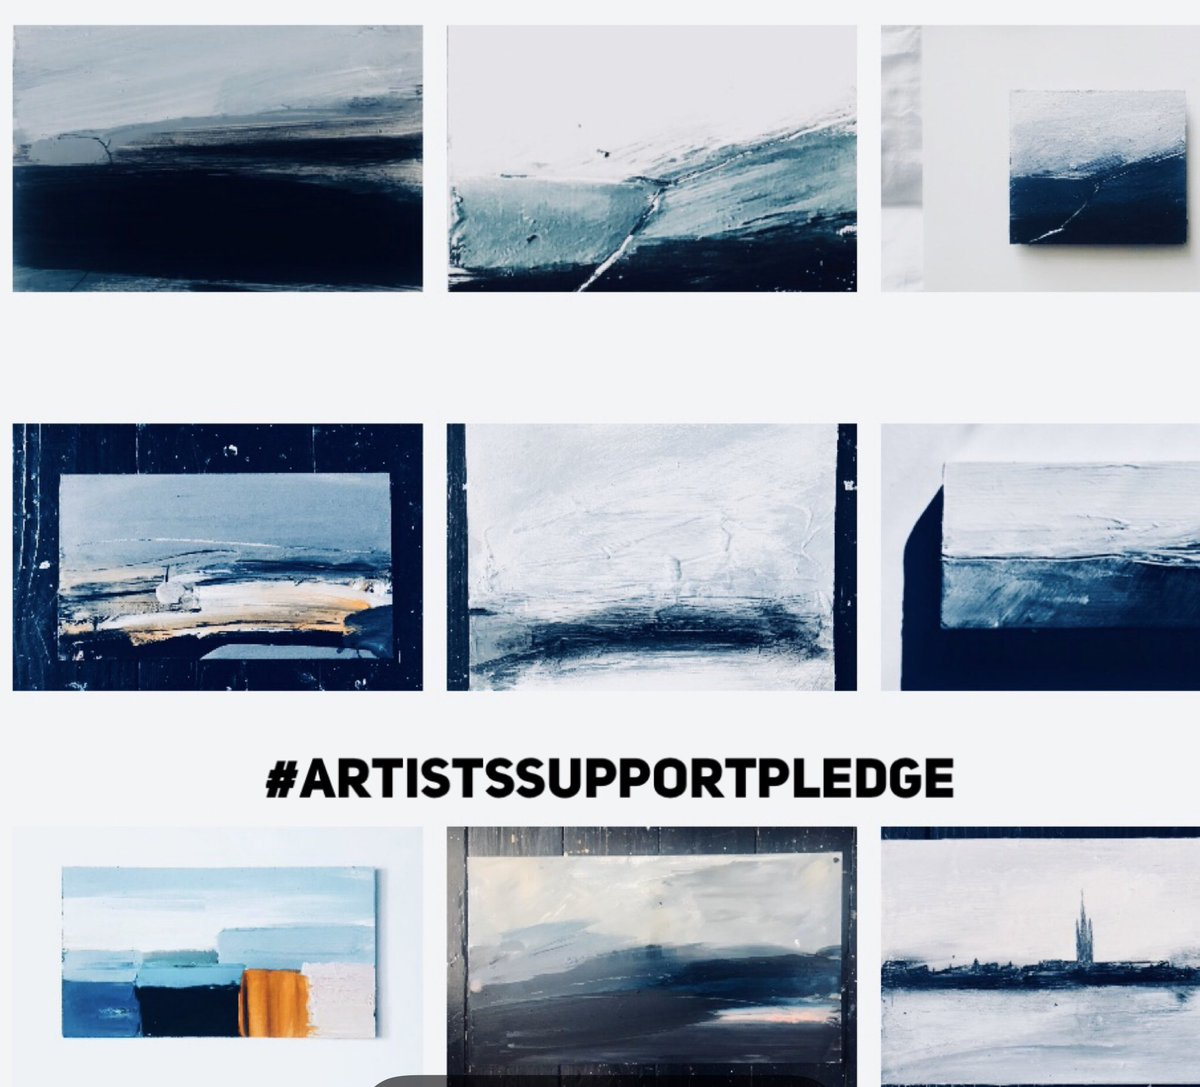 #artistsupportpledge  Small seascapes.... £150-£200 + P&P Please DM if you would like more info....supporting each orher in hard times.... #sea #seascapes #scotland #womenartists #painting #artistsupportpledge #slowliving #timeout #SupportingIndependents #ArtHelps #gratitudepic.twitter.com/67jxYWOPjh